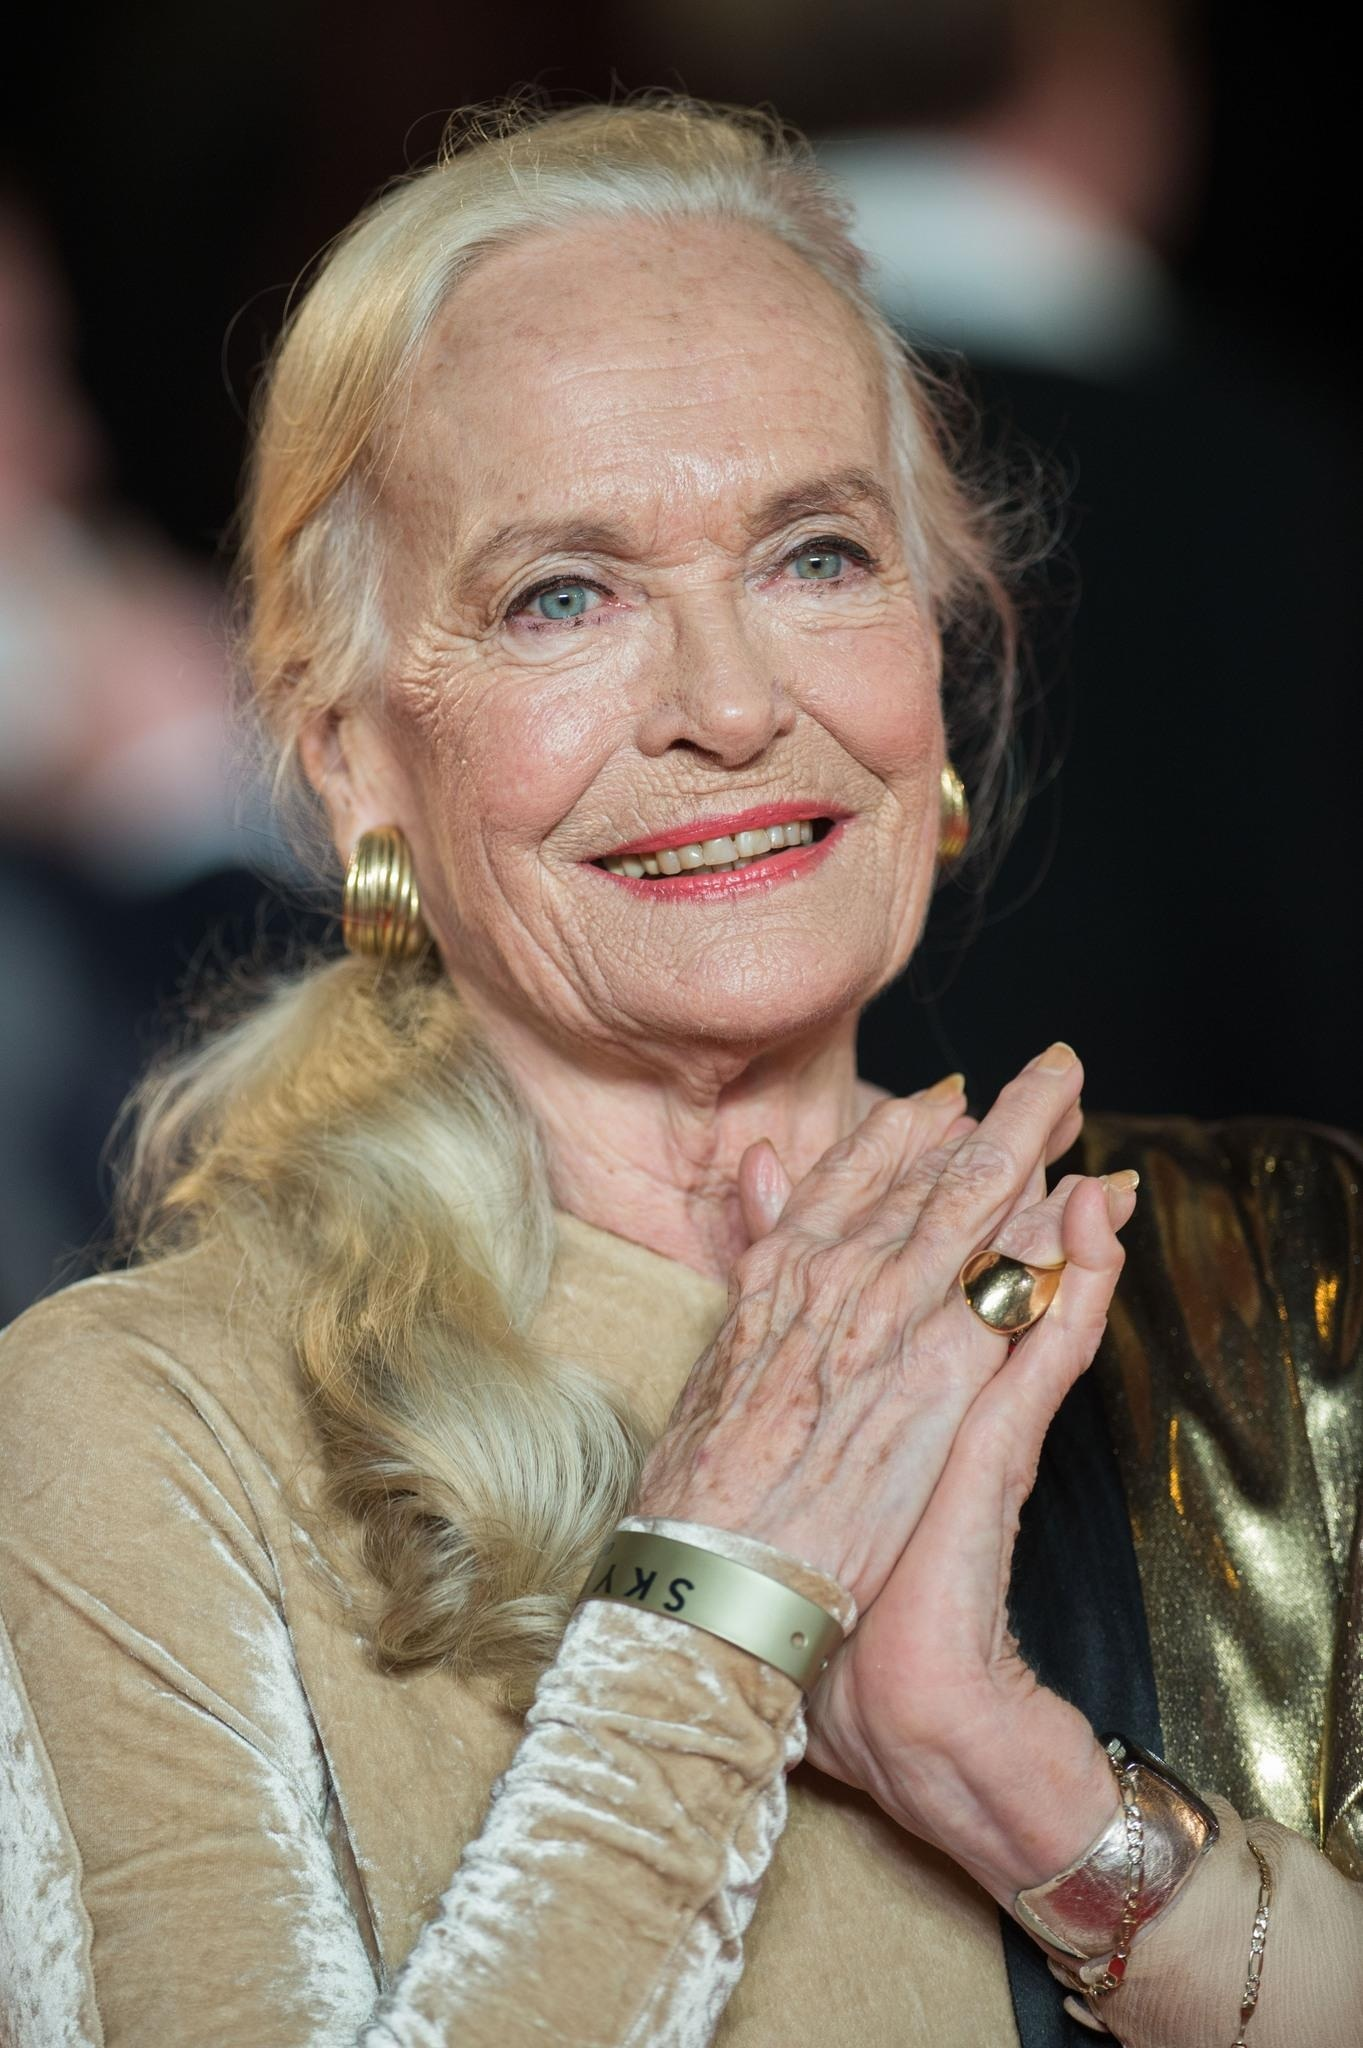 shirley eaton in coordonata skyfall large picture 578432535 20 Movie Urban Legends (That Aren't Actually True)